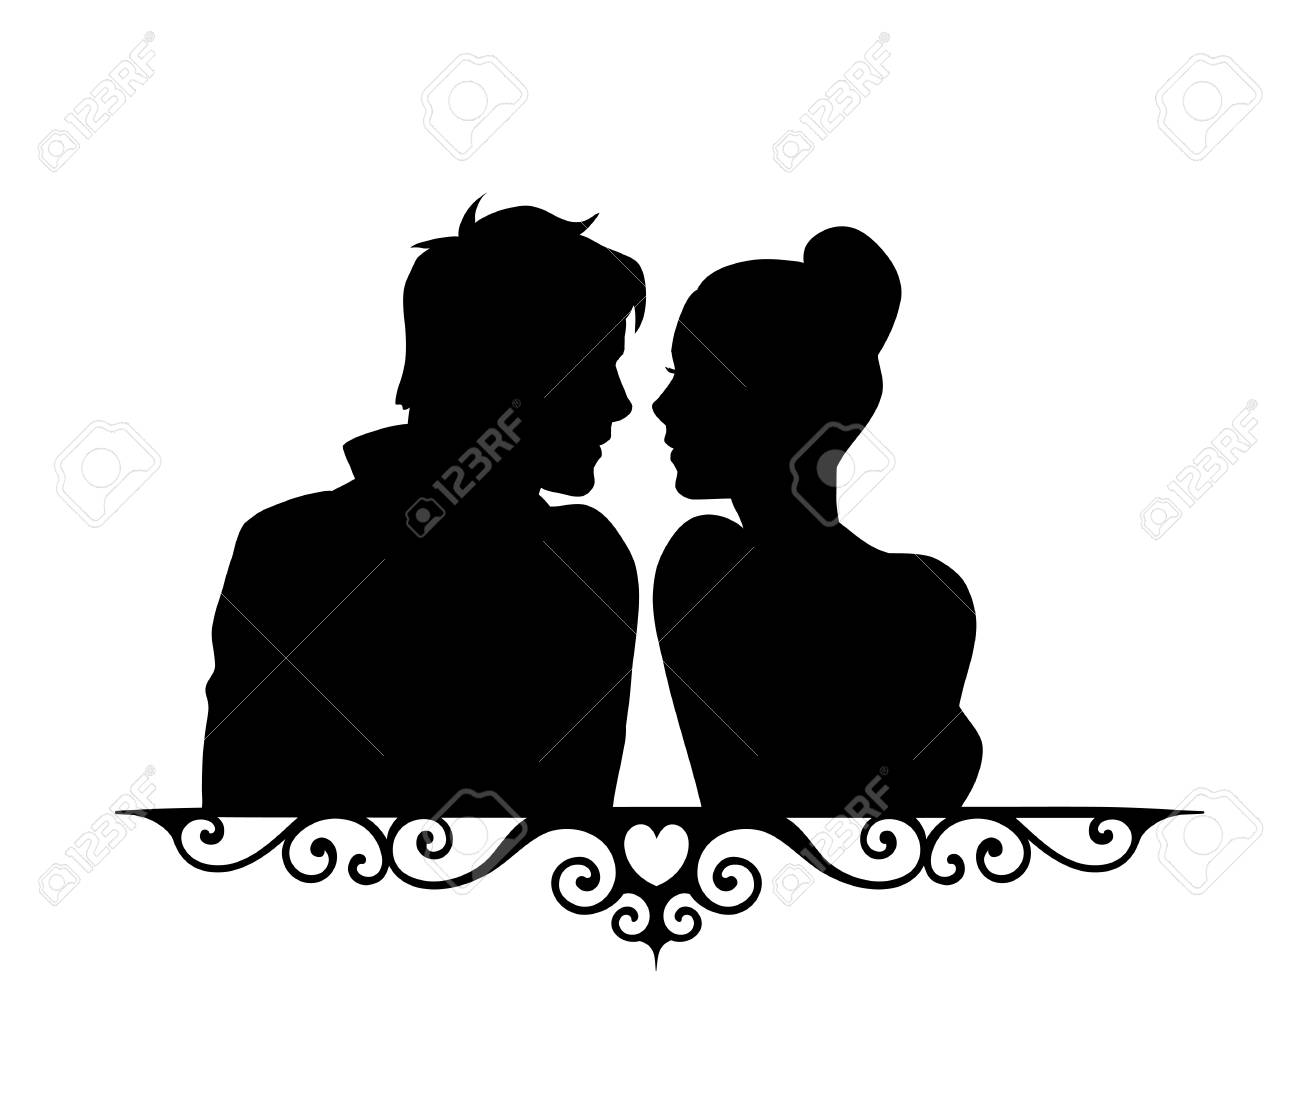 Loving couple sketch silhouette illustration isolated on white background for wedding and valentine day